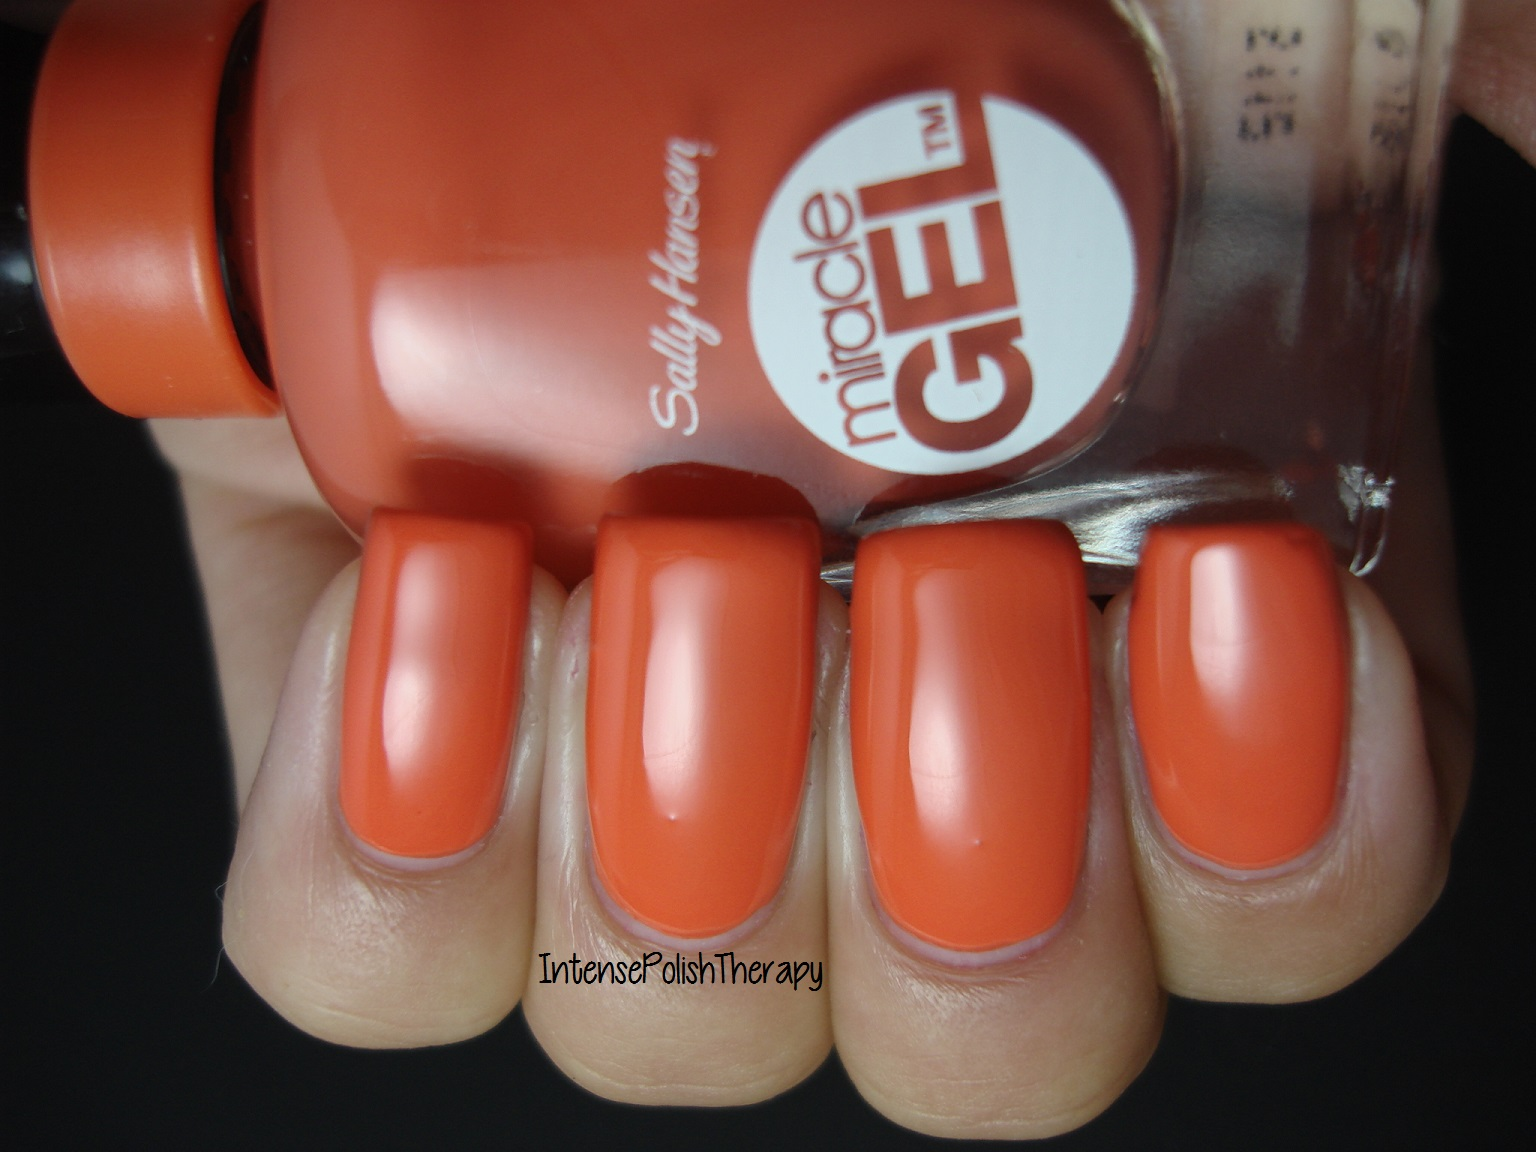 Intense Polish Therapy New Launches from Sally Hansen  Complete Salon Manicure  Miracle Gel